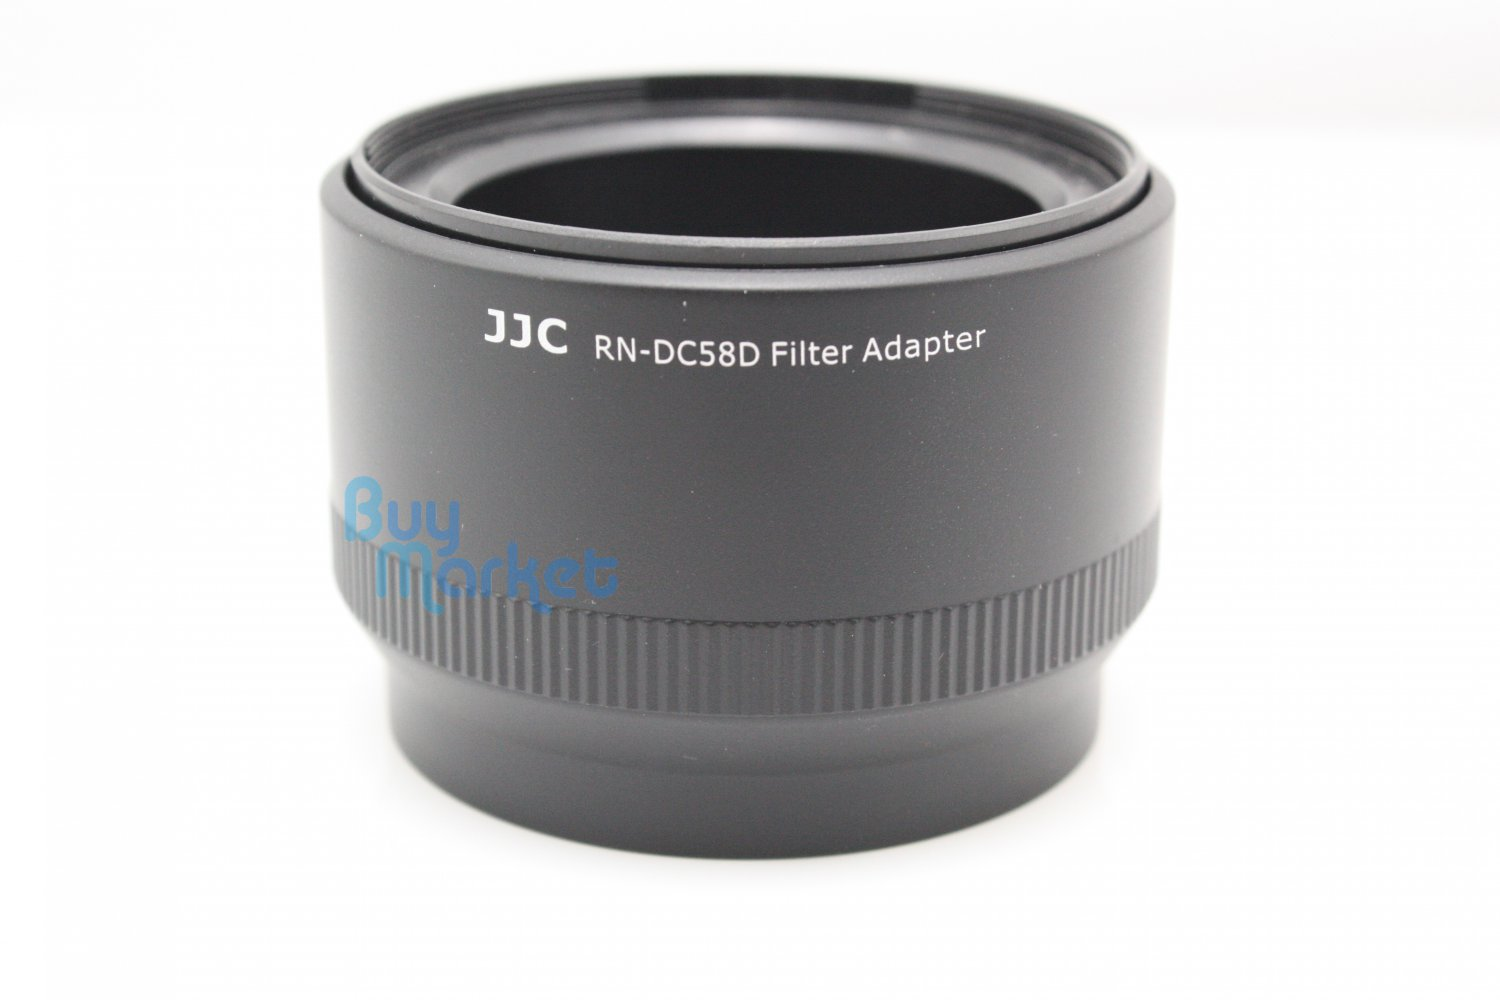 JJC RN-DC58D Lens Adapter Tube For Camera Canon Powershot G15, replaces FA-DC58D